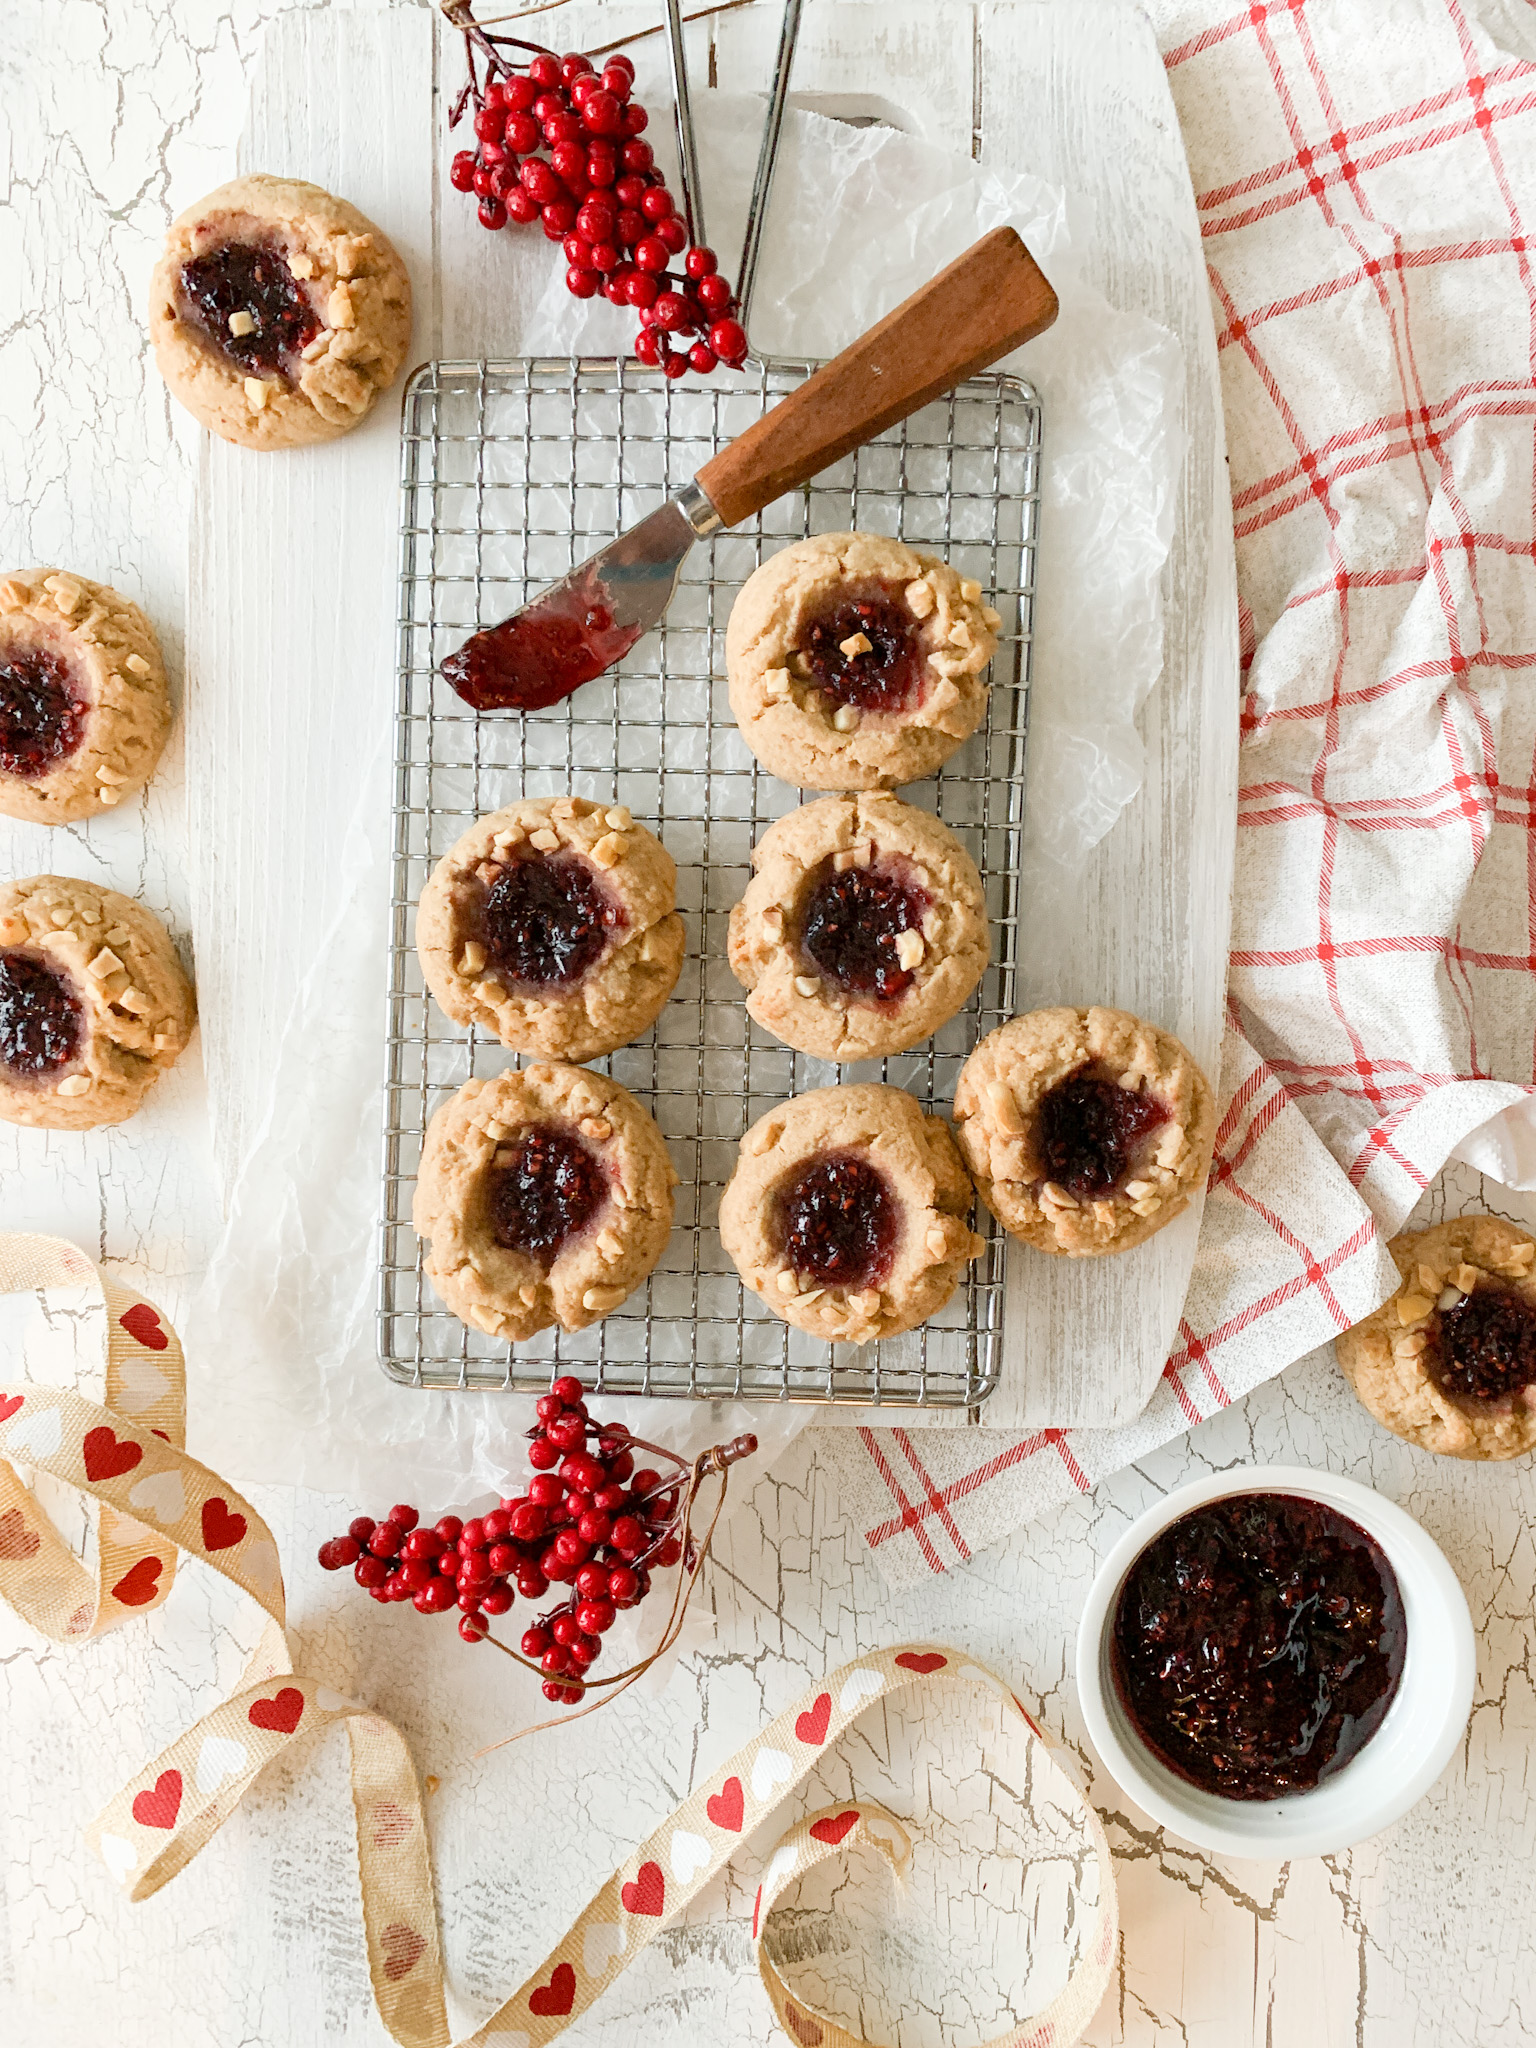 A gluten-free peanut butter and jam sandwich made into a cookie.